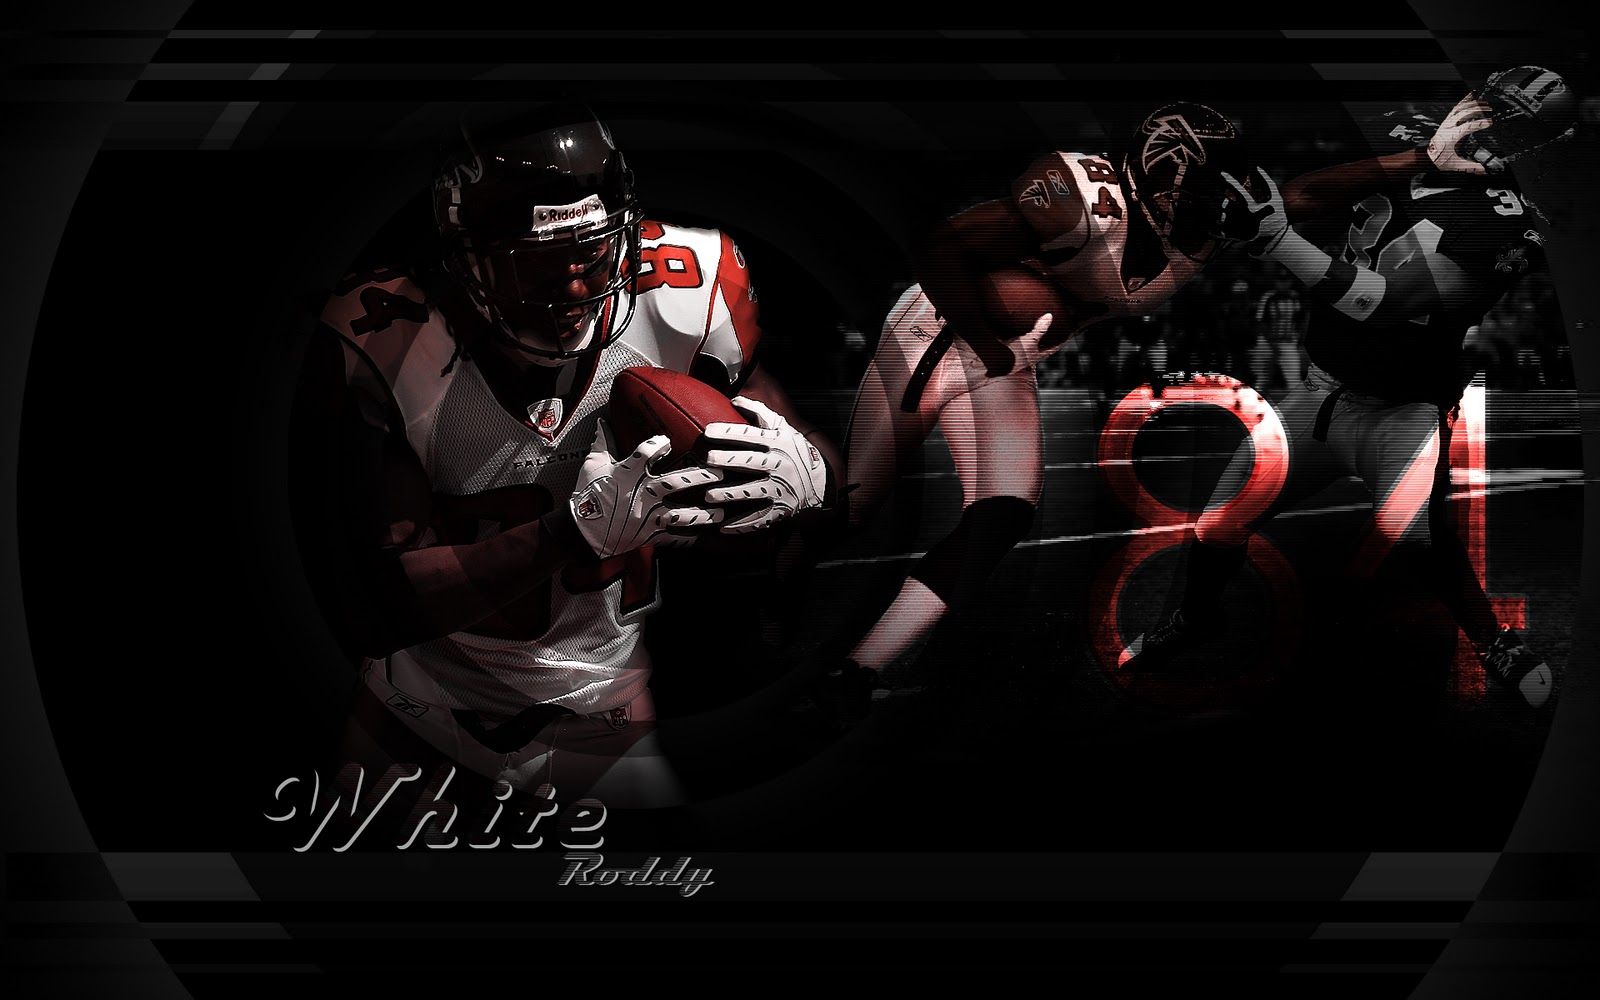 NFL Wallpapers: Atlanta Falcons - RODDY WHITE